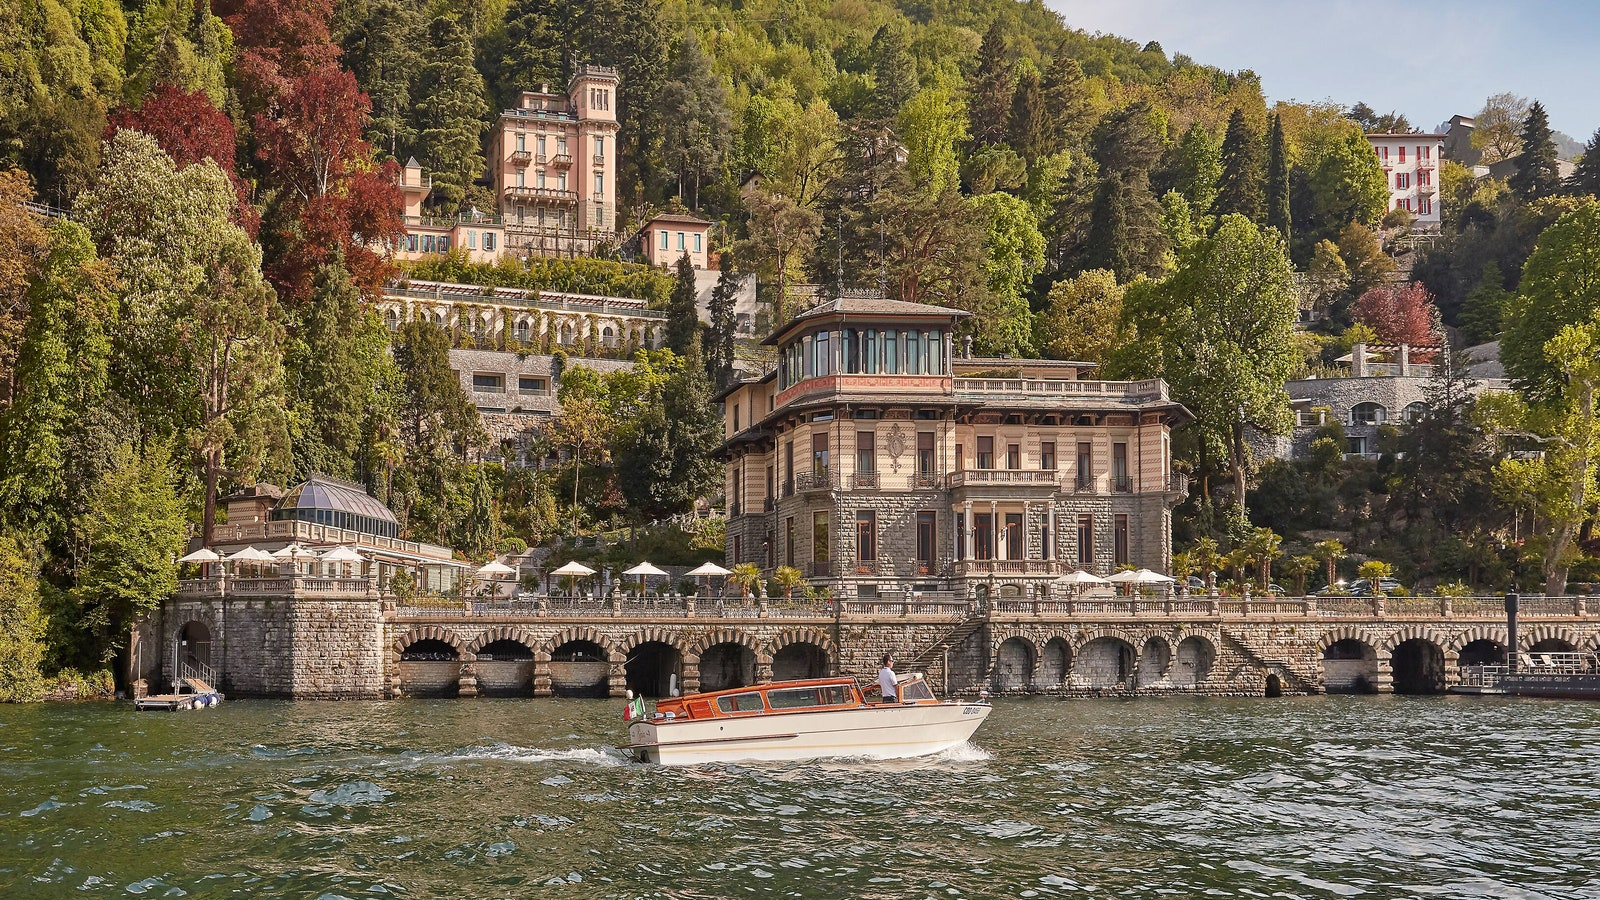 The Best New Hotels In The World: 2020 Hot List | Condé Nast For Most Recently Released Blended Fabric Lago Di Como Ii Wall Hangings (View 12 of 20)